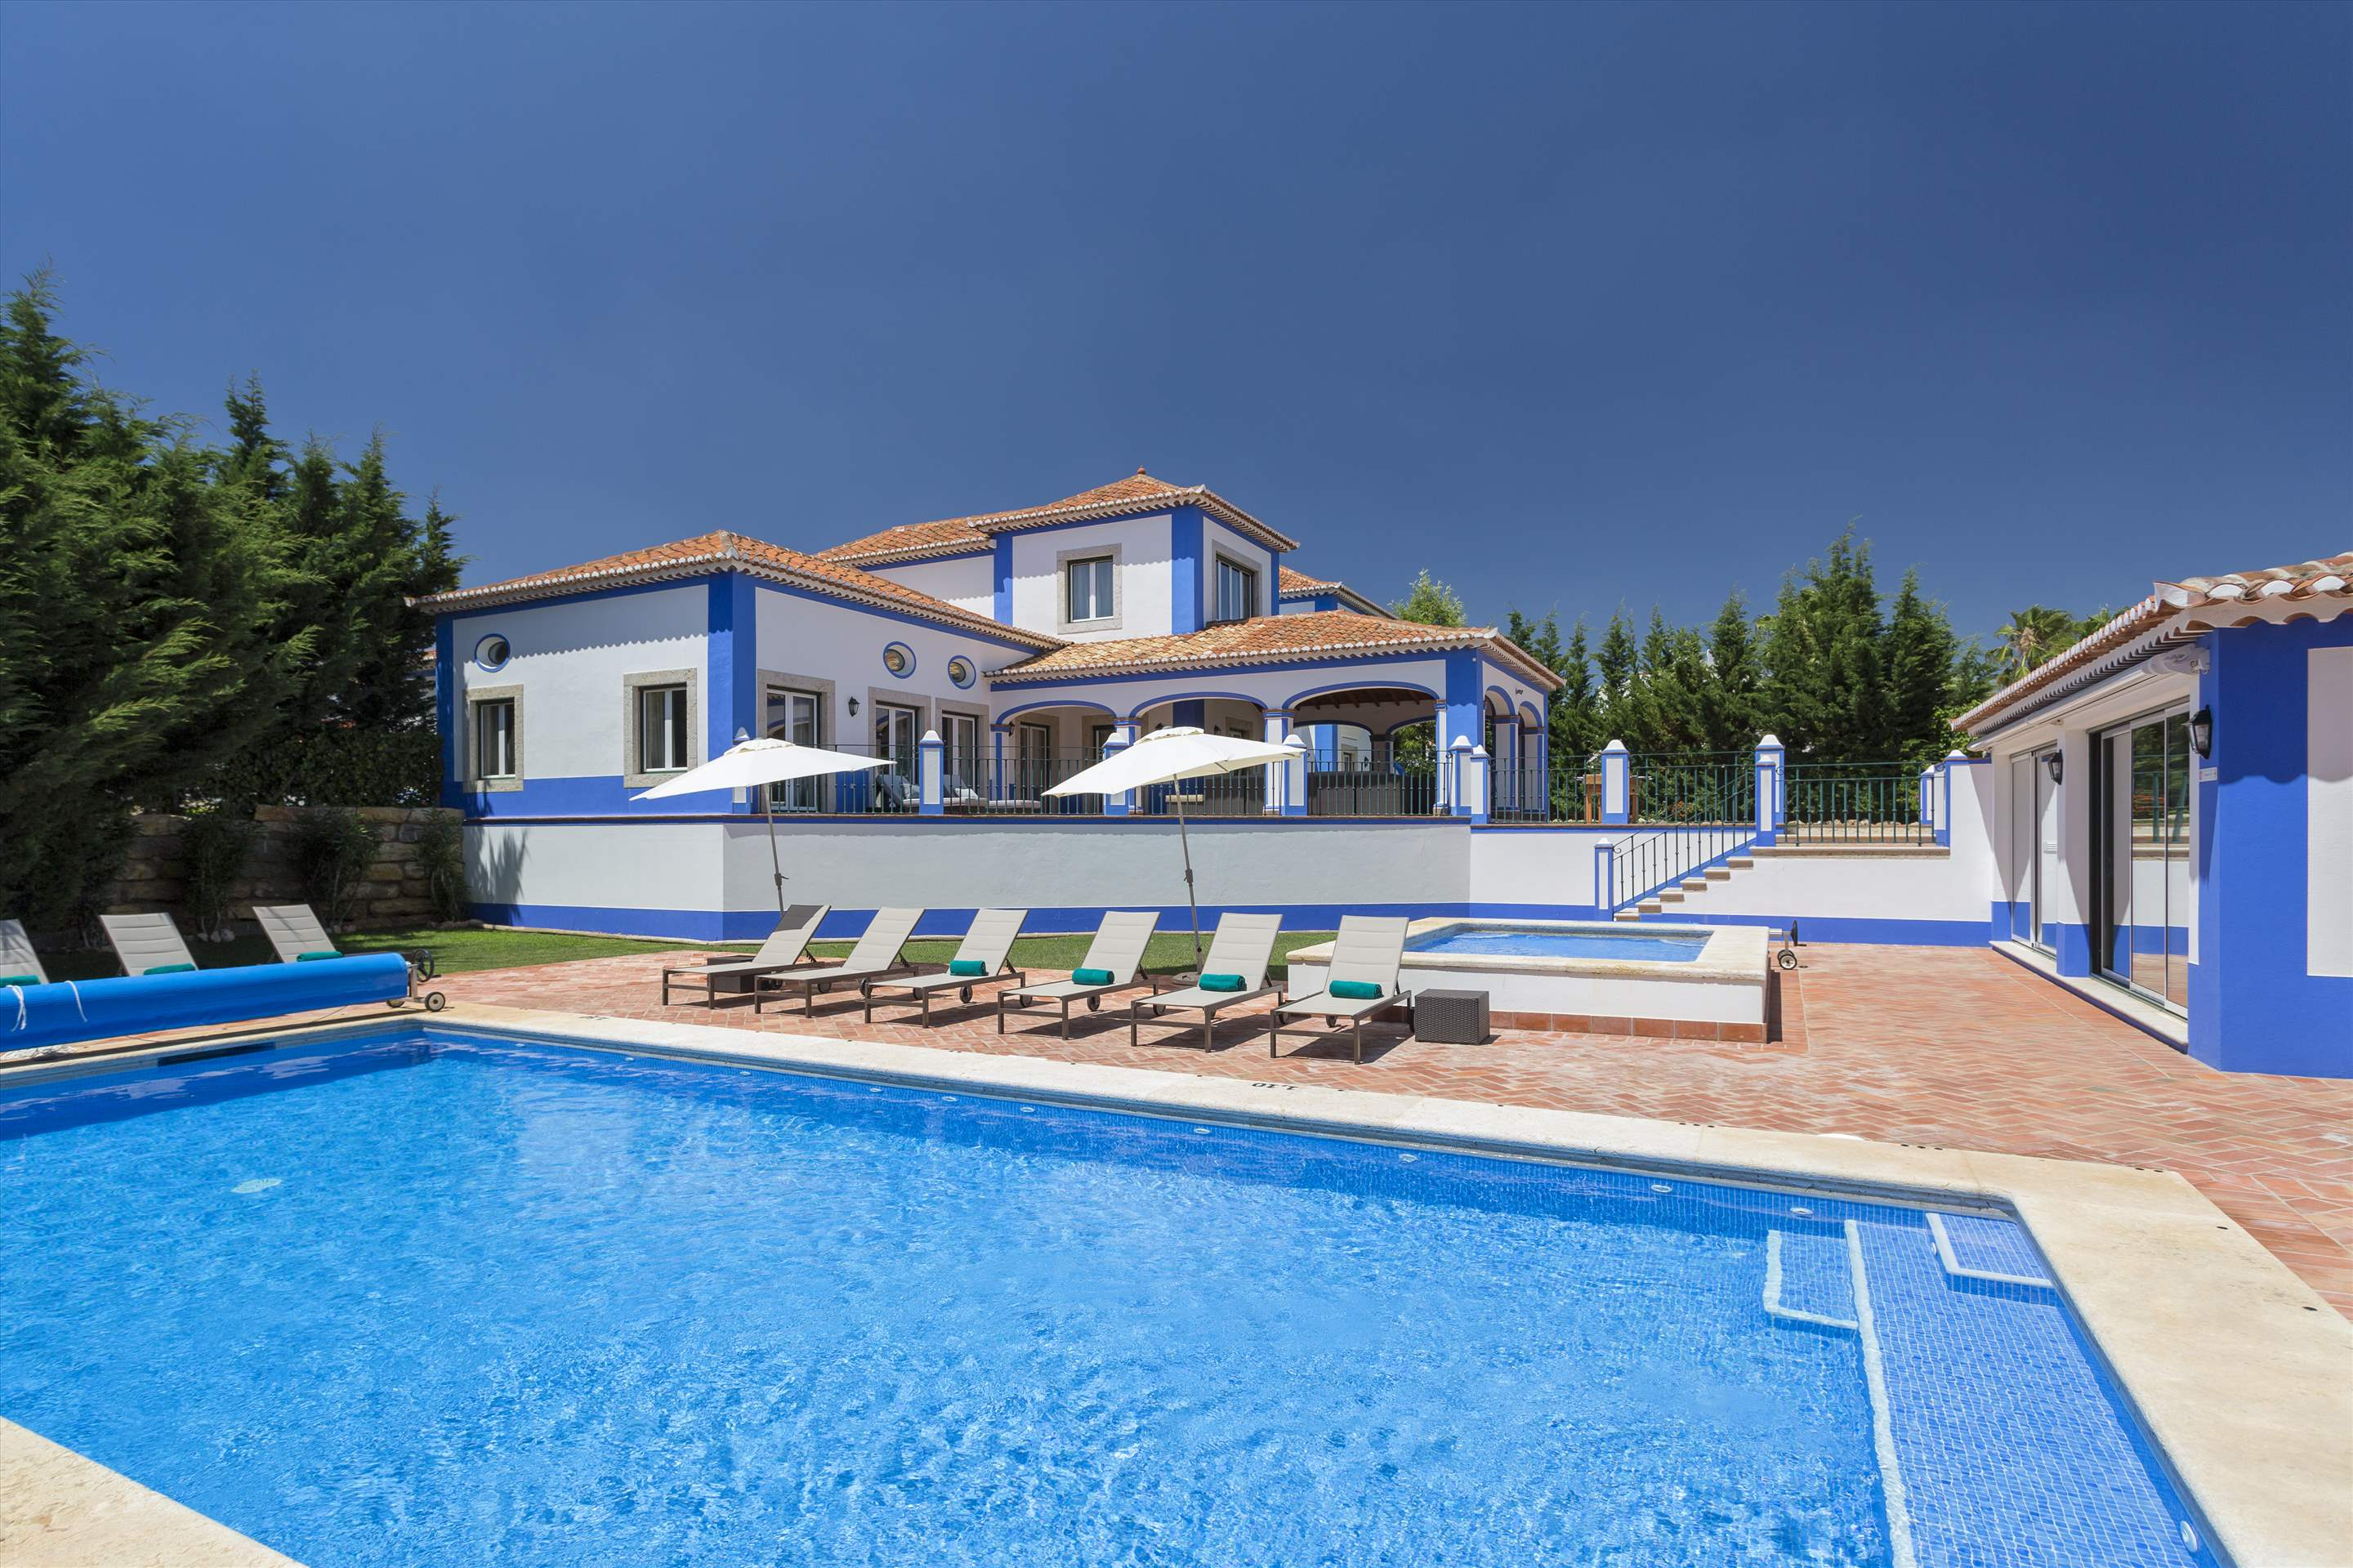 Villa Milho, Four Bedroom Rate, 4 bedroom villa in Vilamoura Area, Algarve